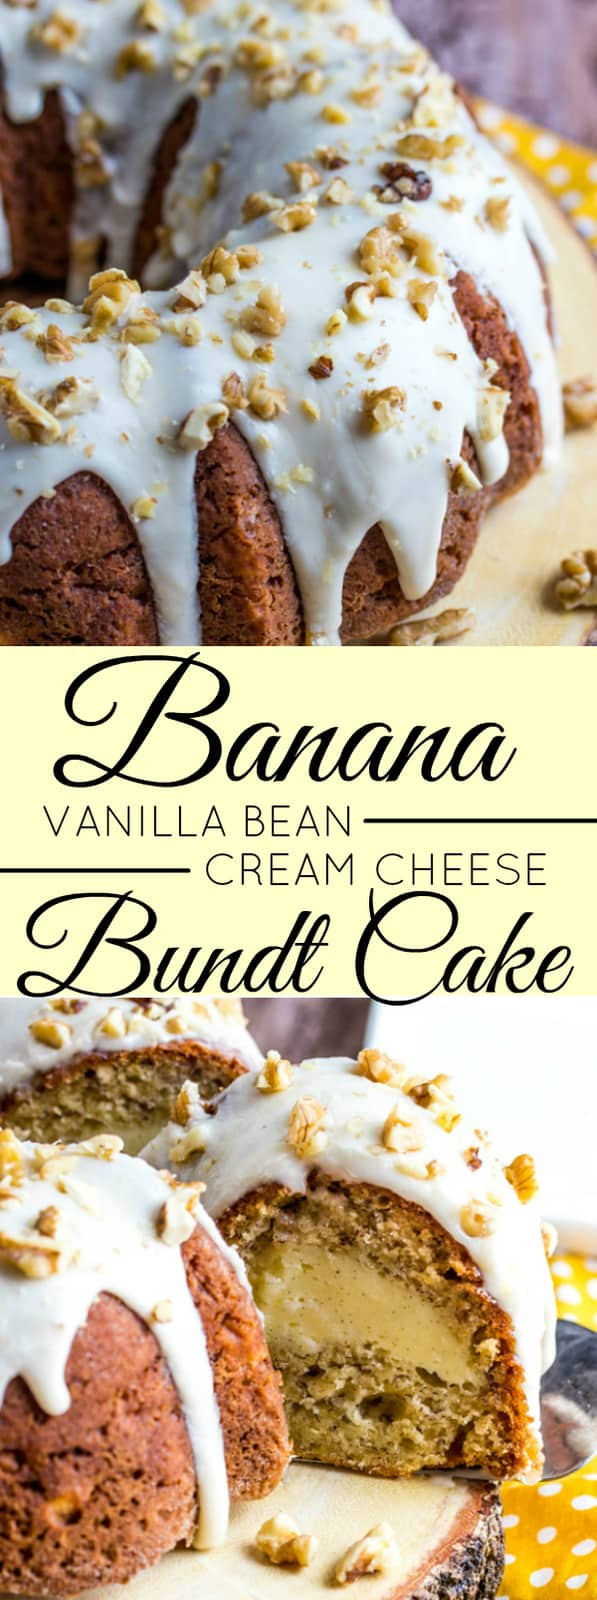 Banana Vanilla Bean Cream Cheese Bundt Cake